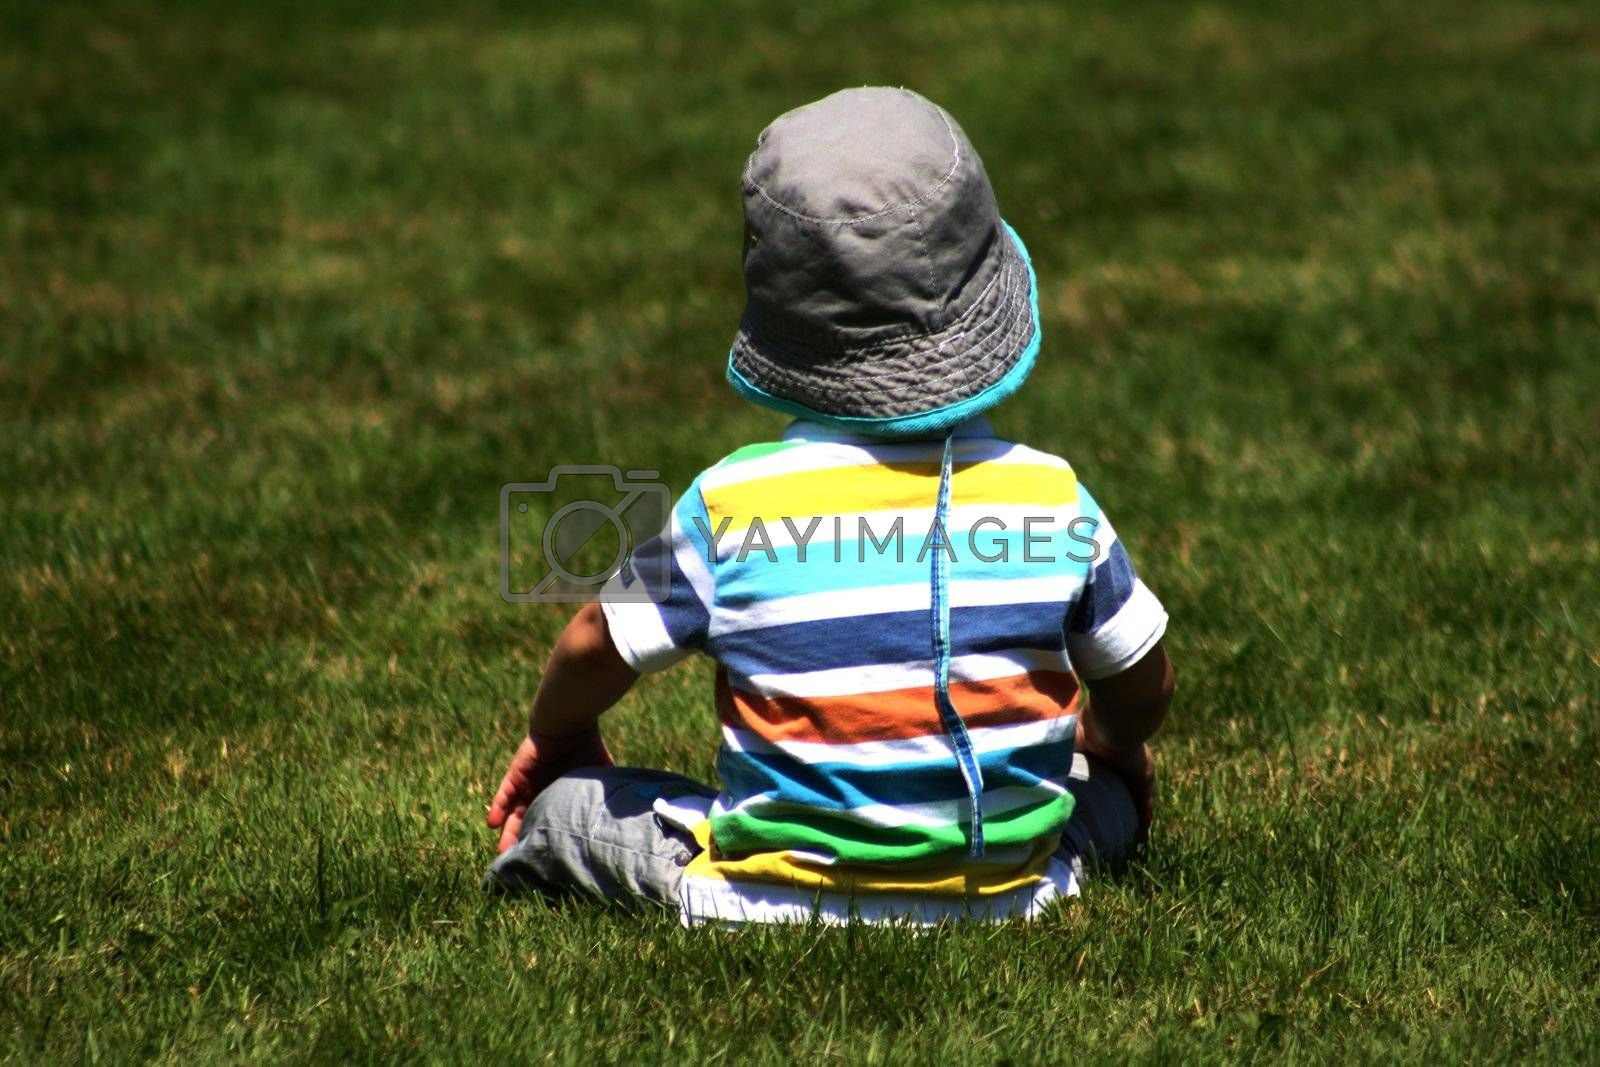 Toddler enjoying the sun while sitting in the grass